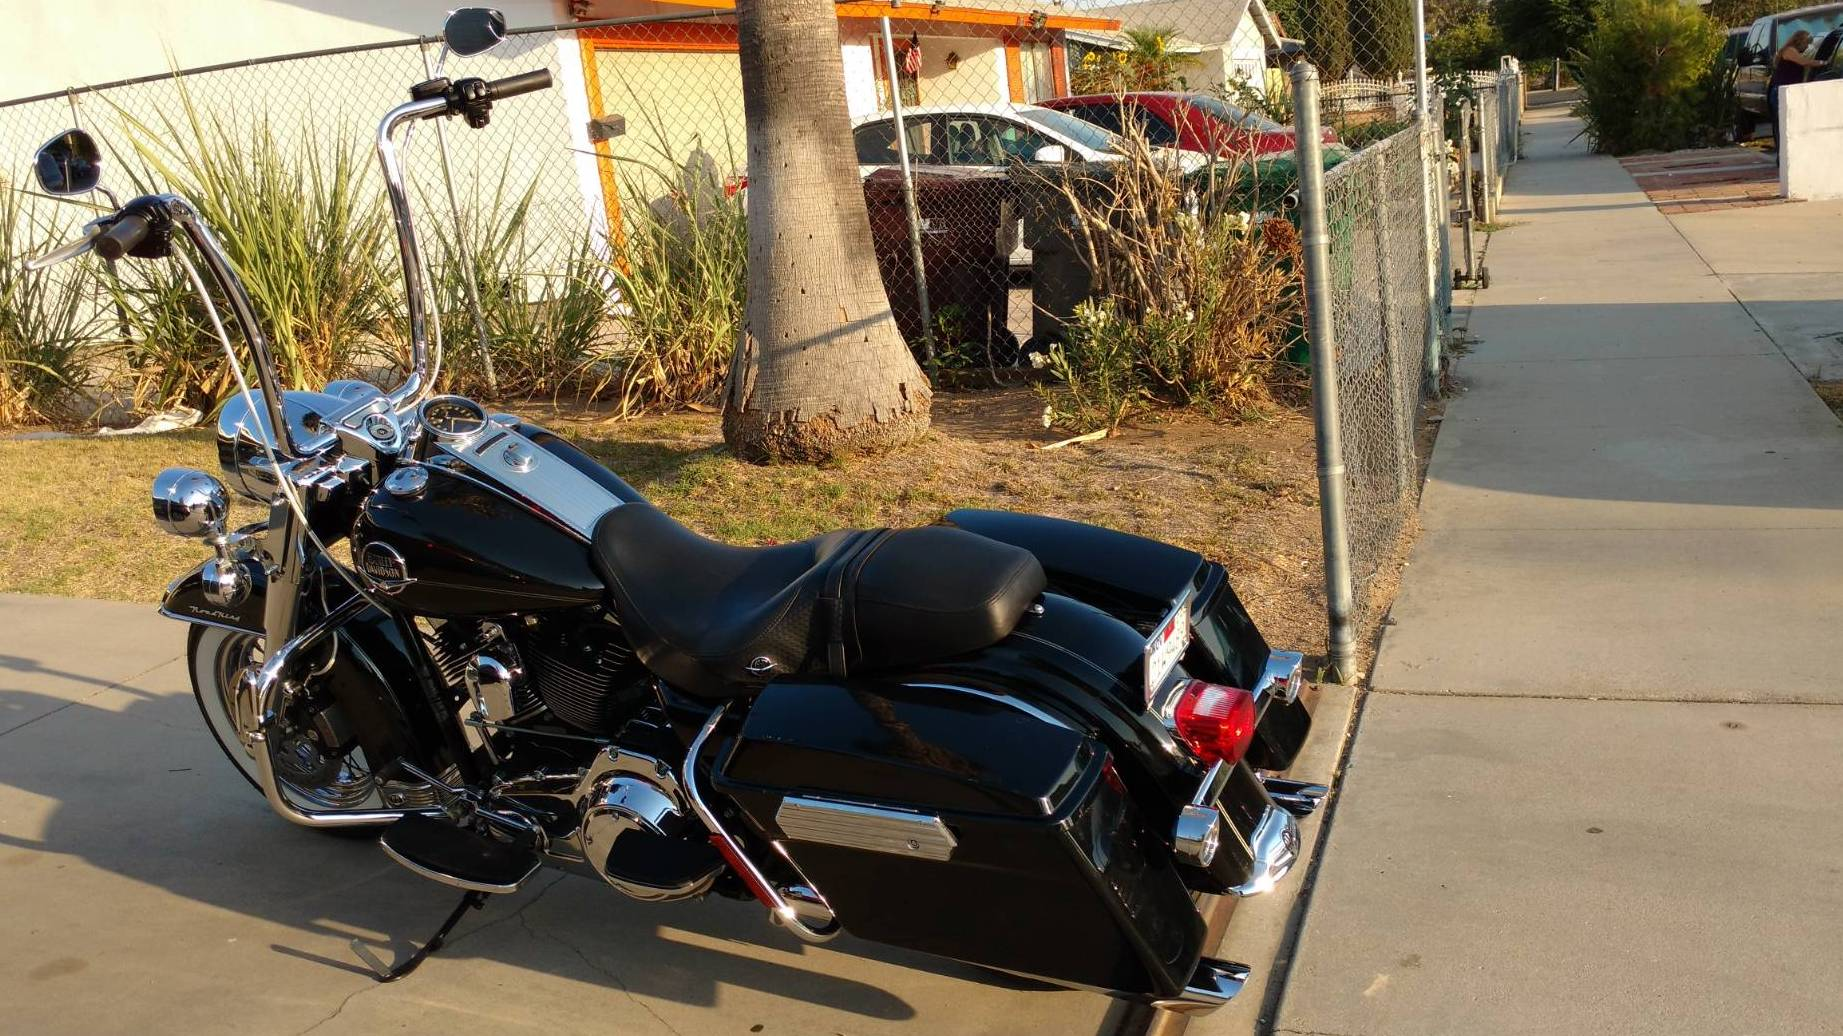 Harley Davidson Flhrc Road King Classic Black For Rent Near Moreno Valley Ca Riders Share